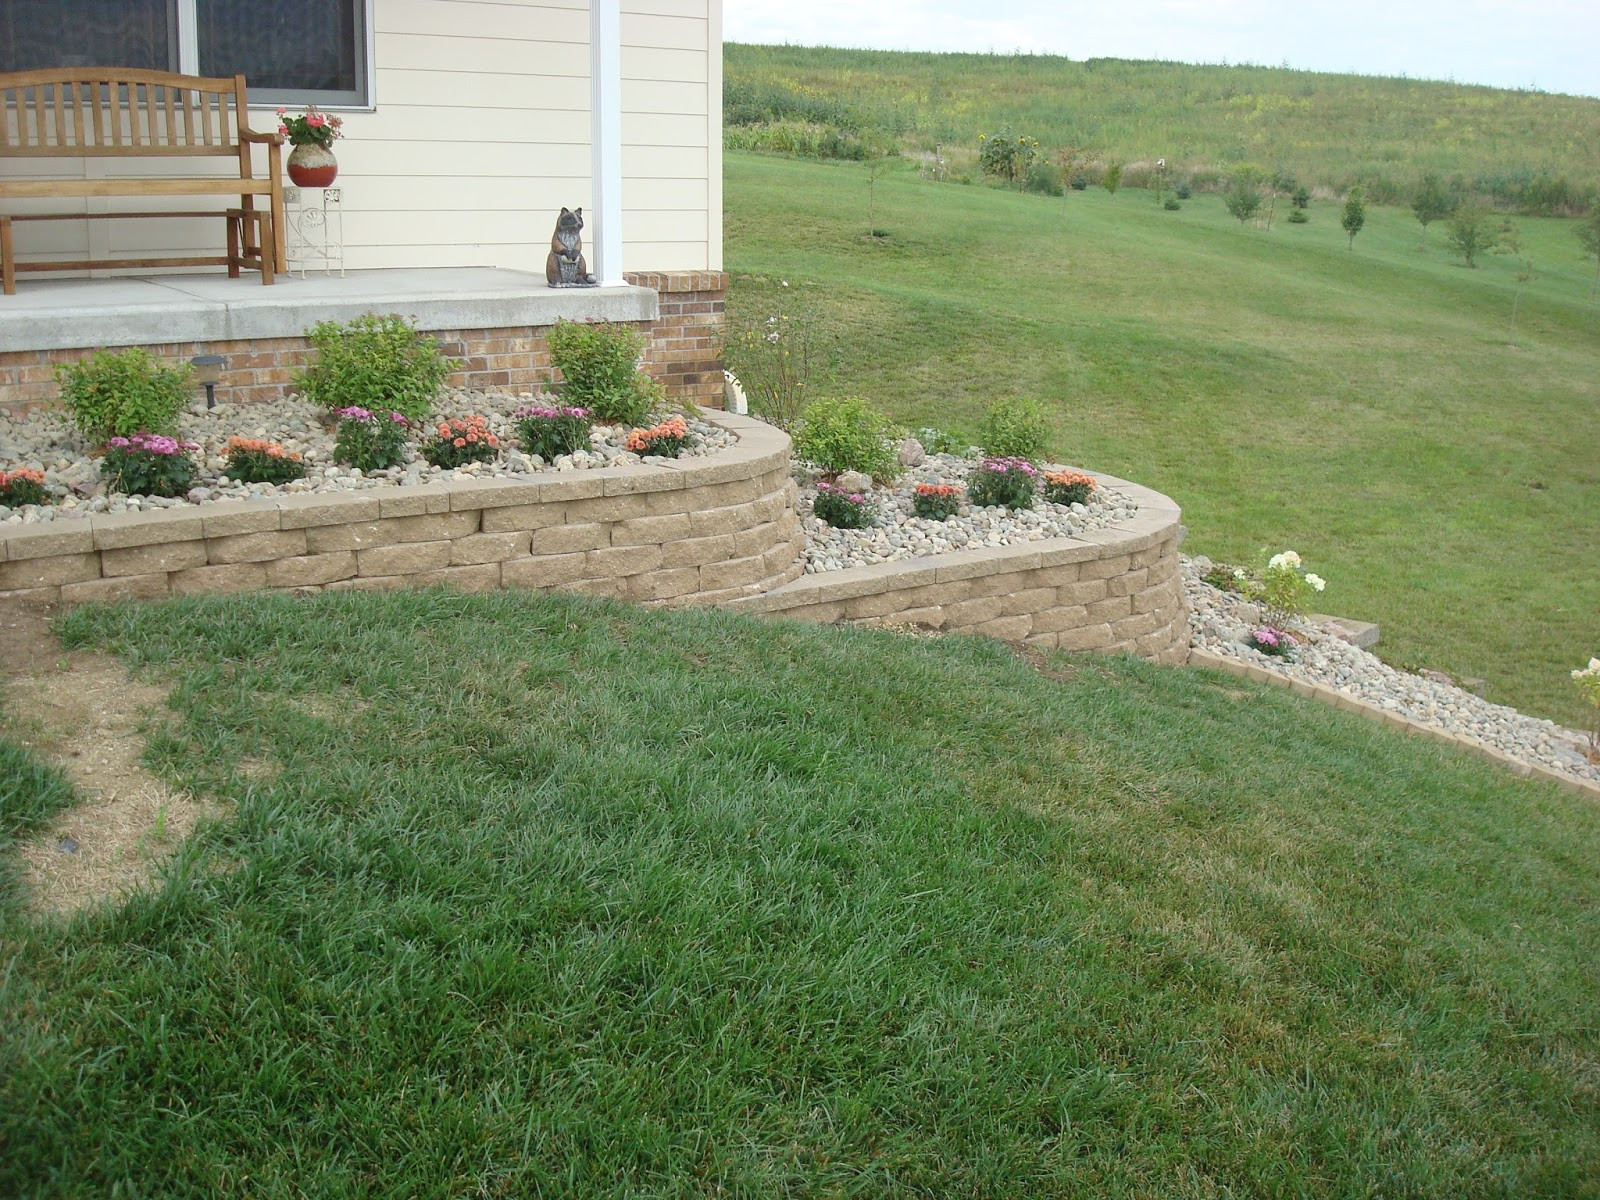 Best ideas about DIY Retaining Wall . Save or Pin Dishing Up Design DIY Retaining Wall & Landscaping Now.